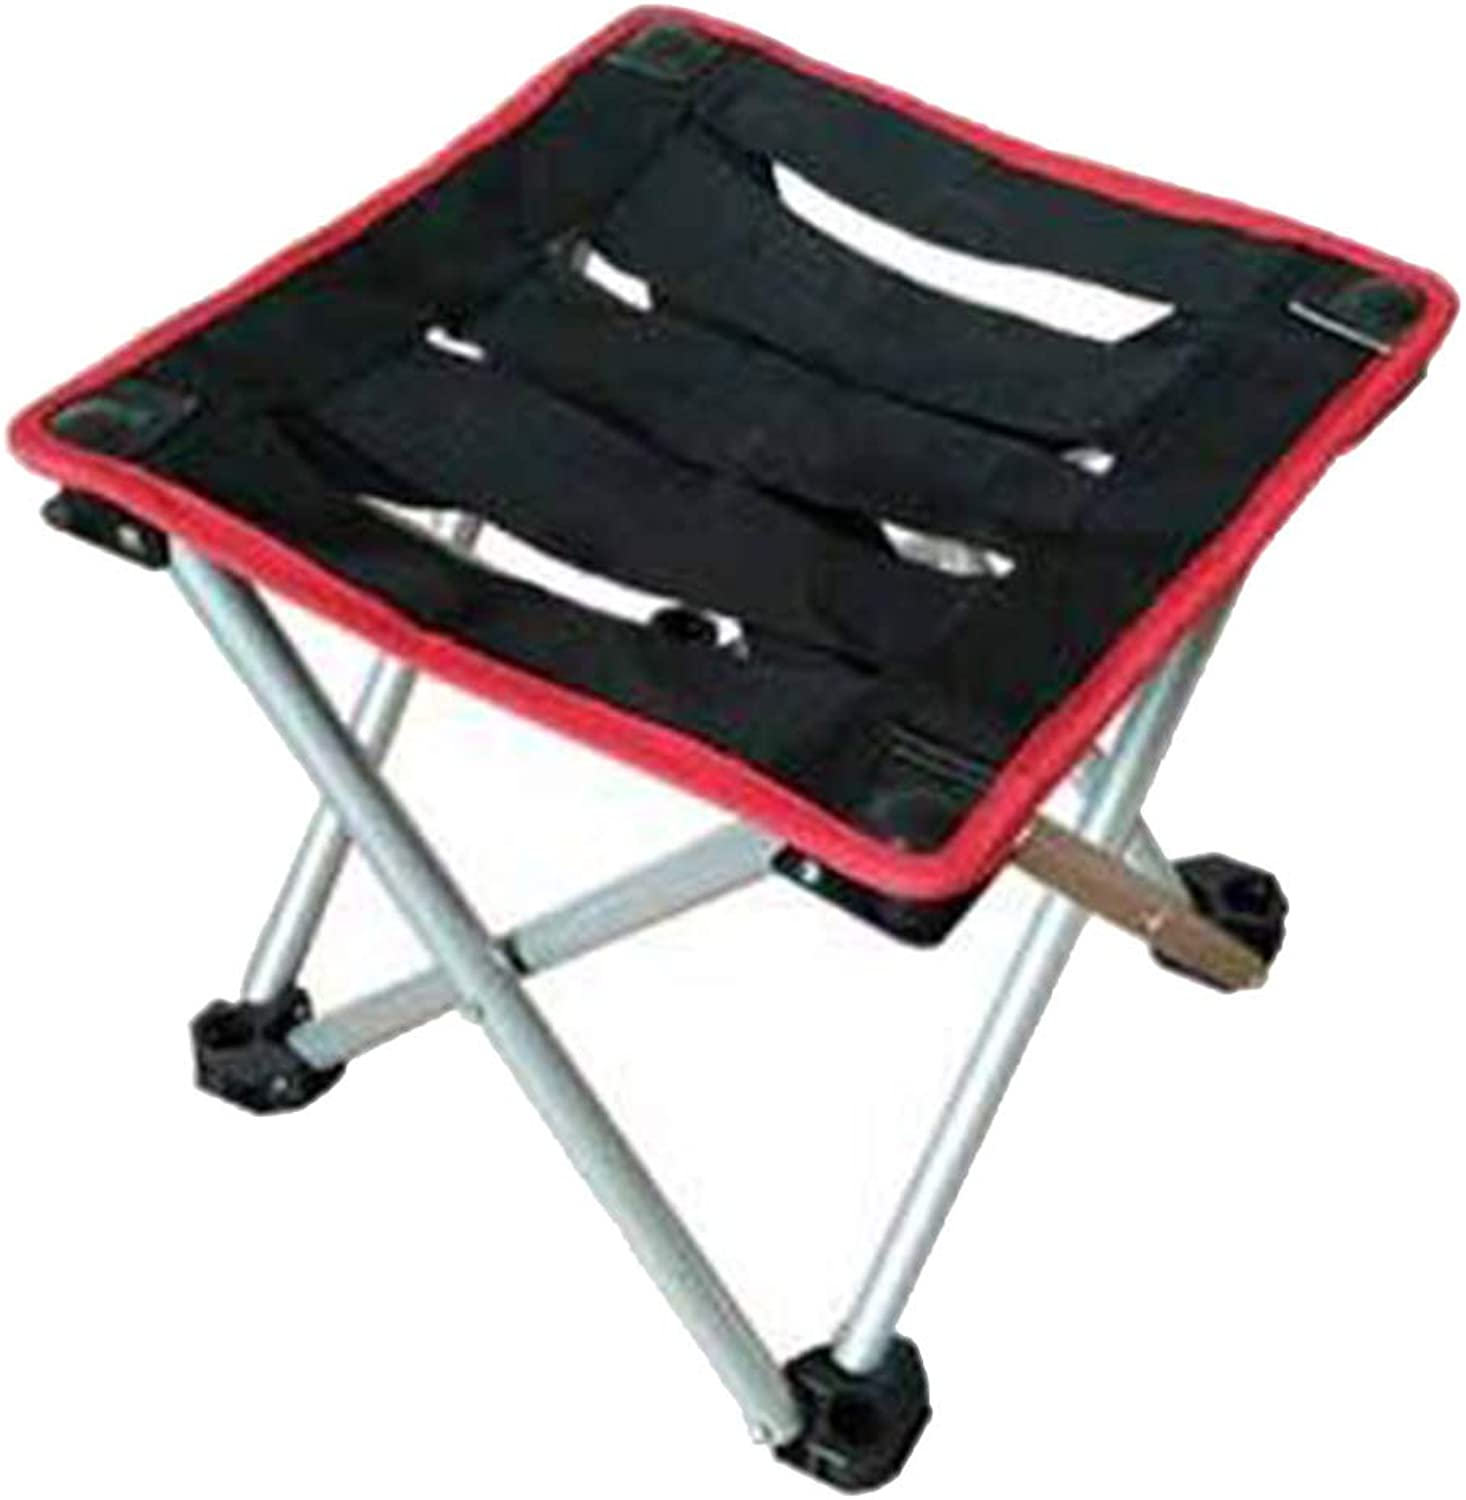 Footstool Portable Little mazza Multipurpose Folding Chair Camping Fishing Beach, Aluminum